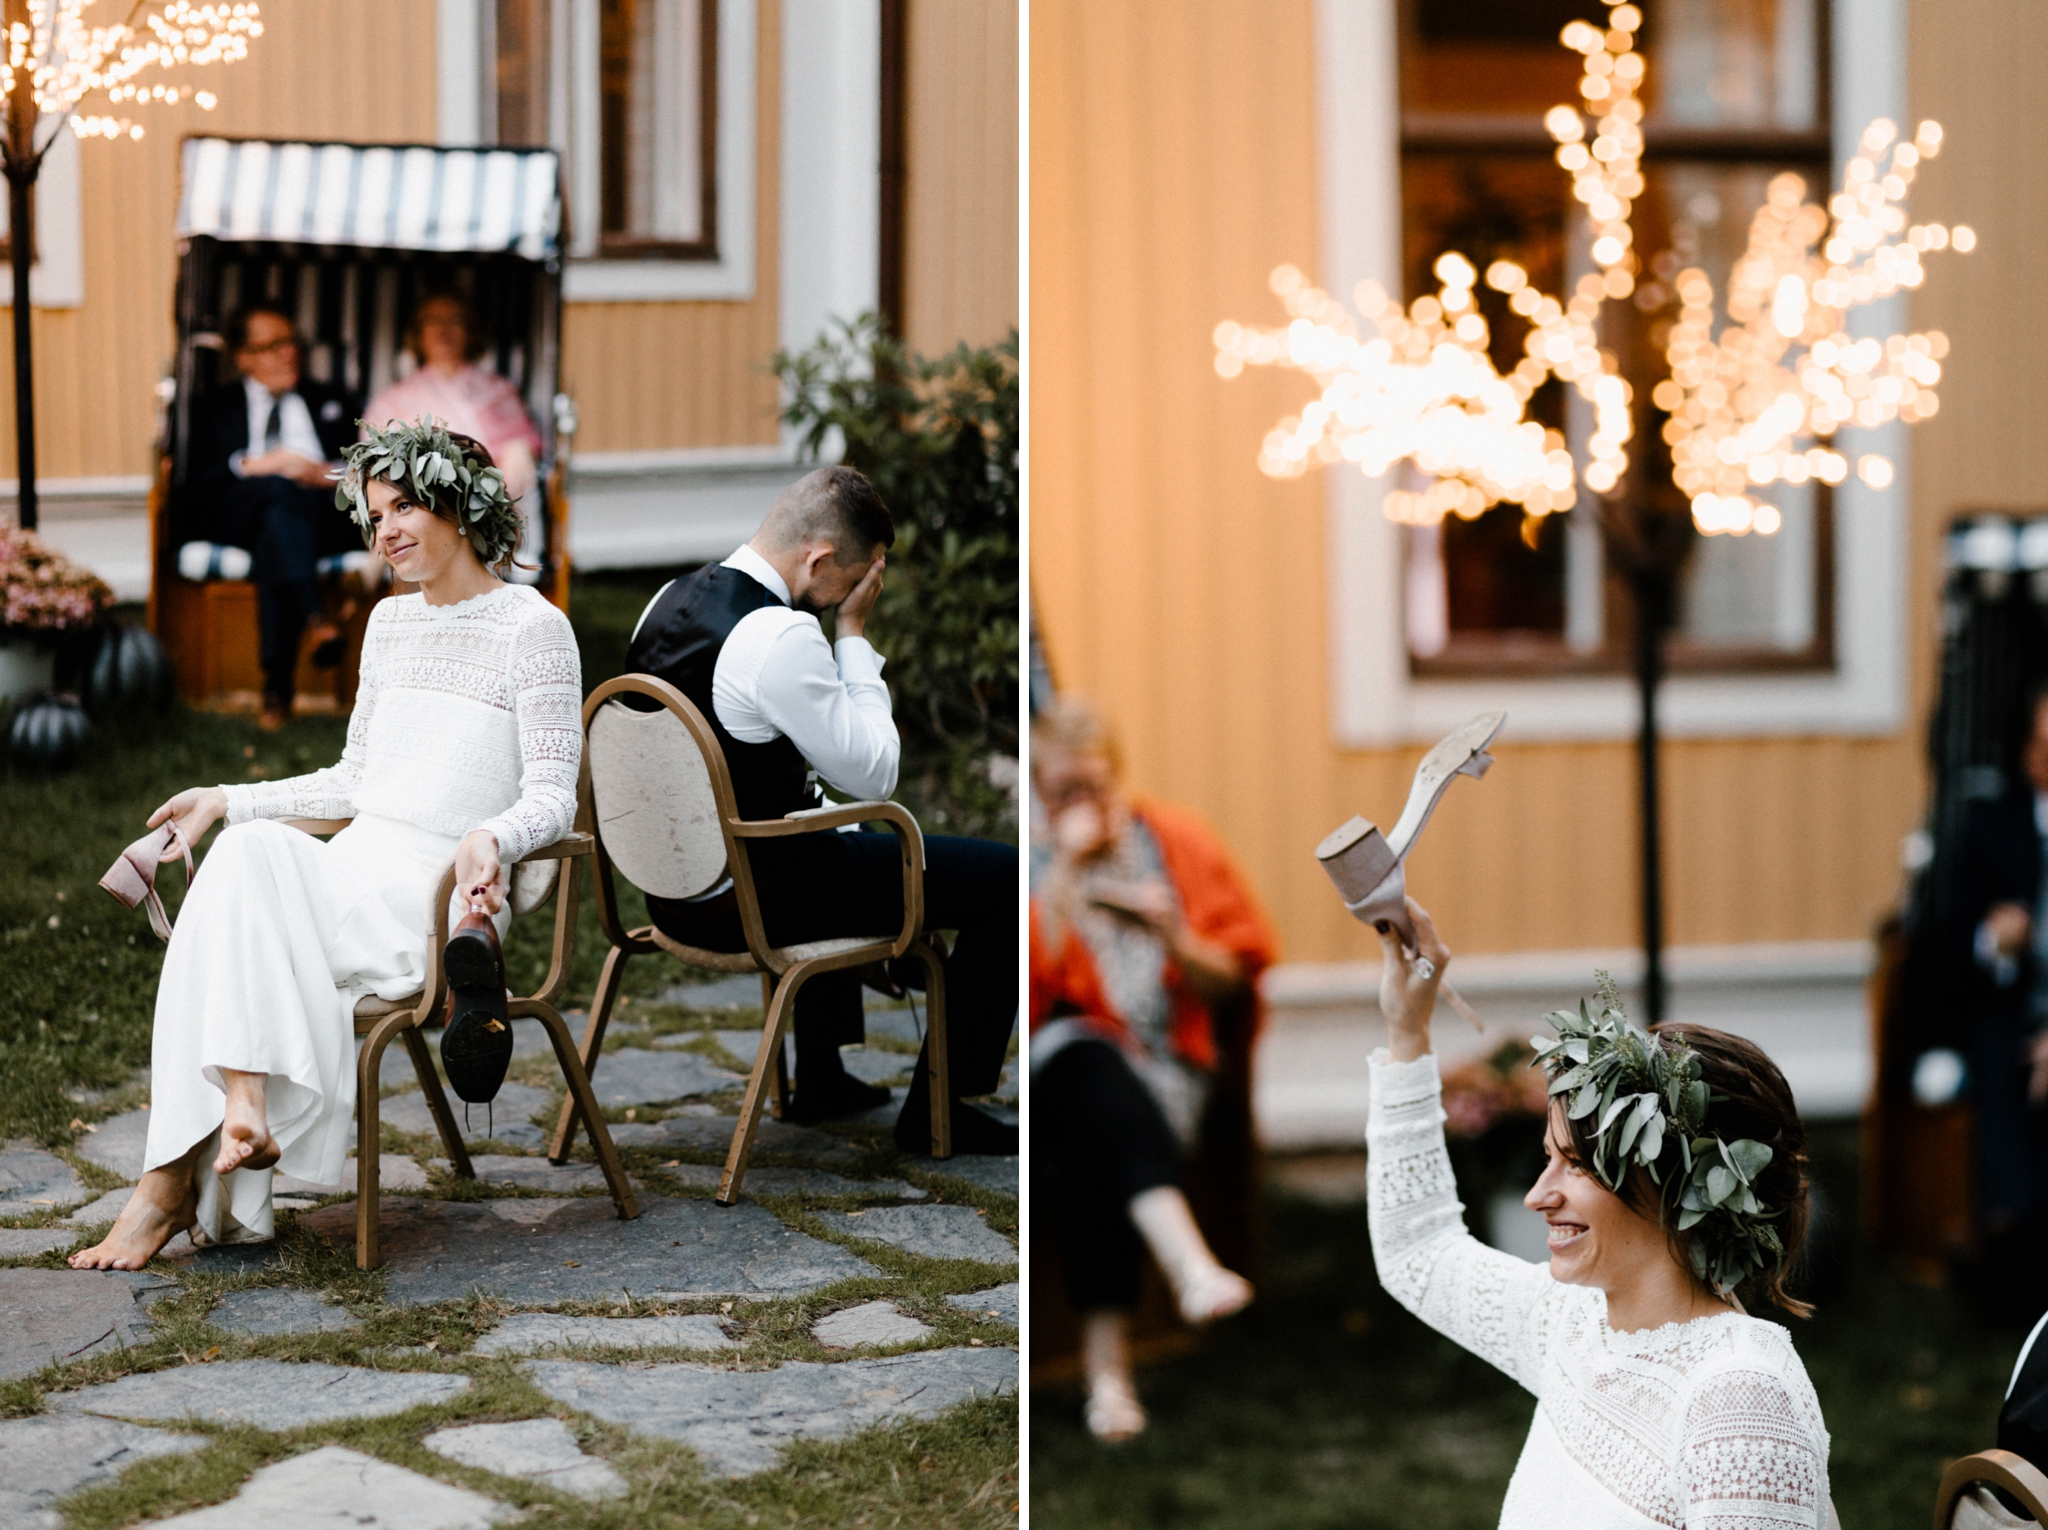 Julien + Johanna | Villa Ivan Falin | by Patrick Karkkolainen Wedding Photography-261.jpg